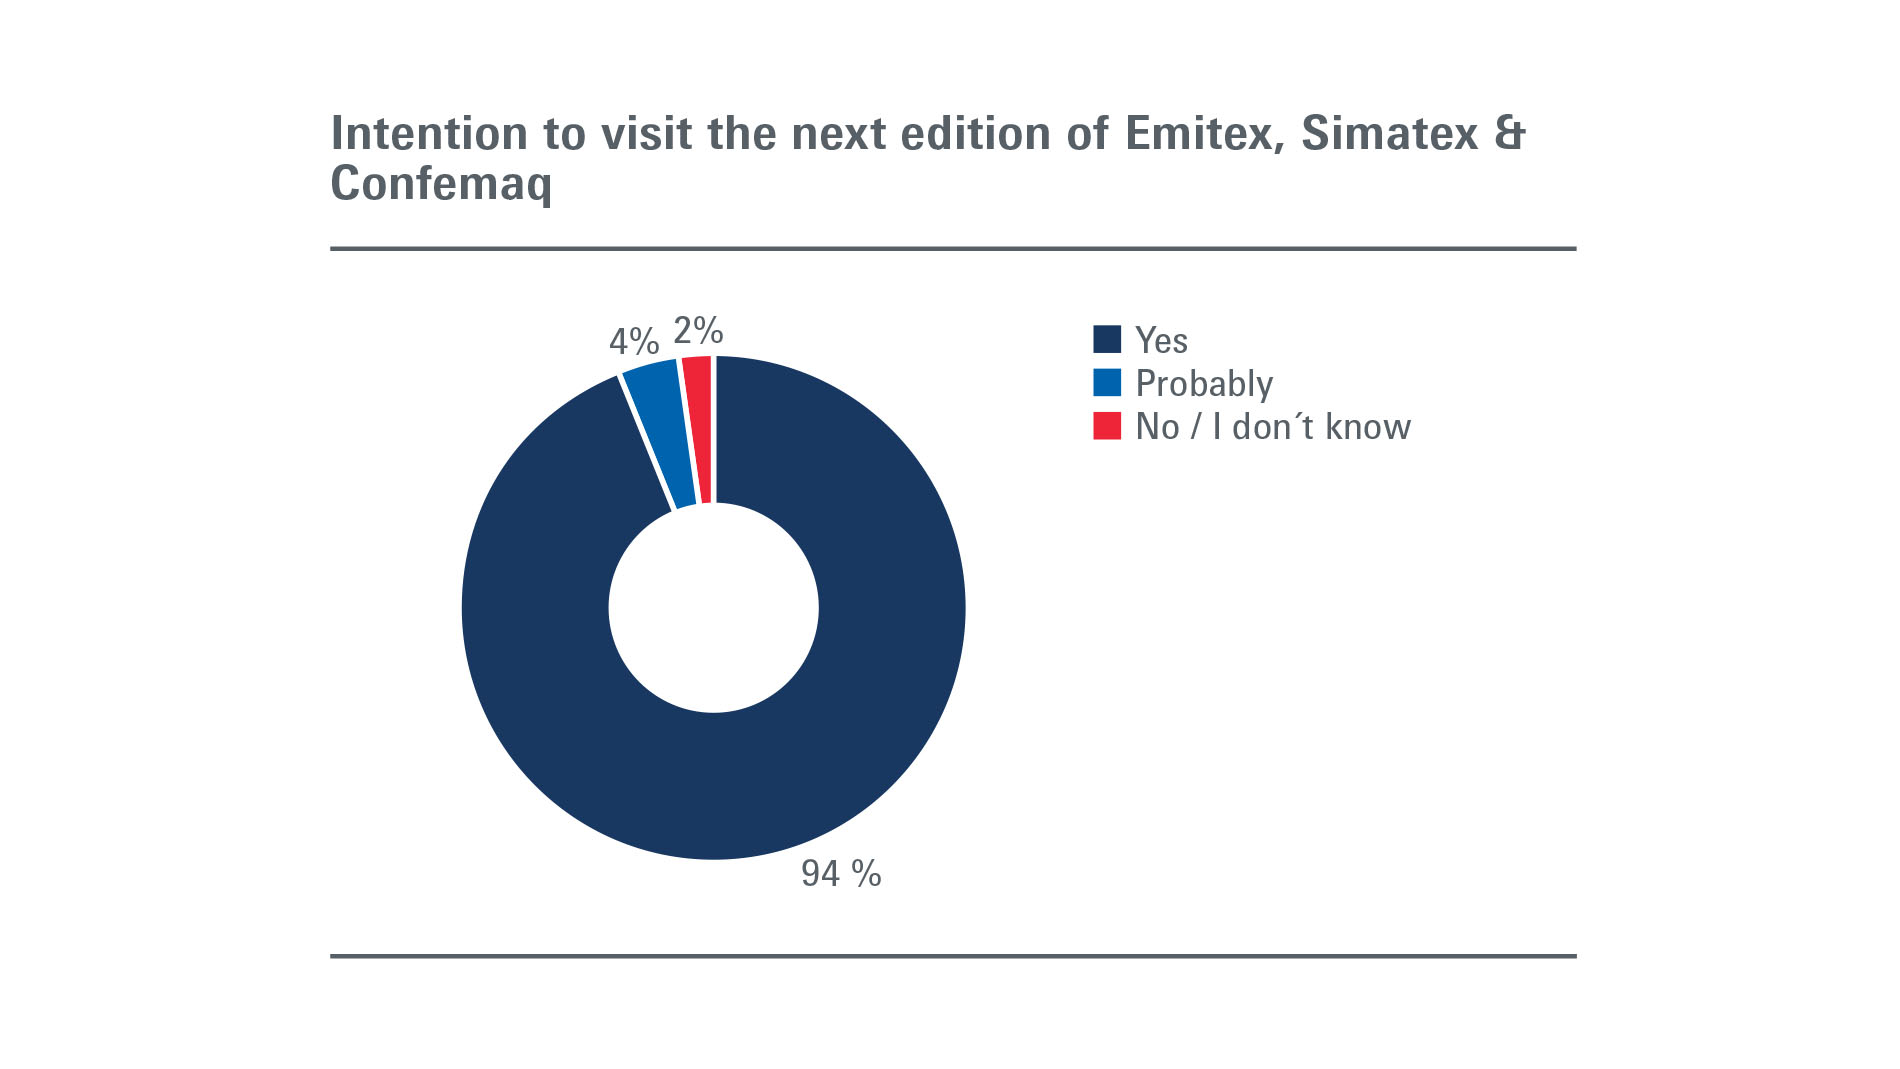 Emitex Simatex Confemaq: Visitors - Intention to participate in next edition